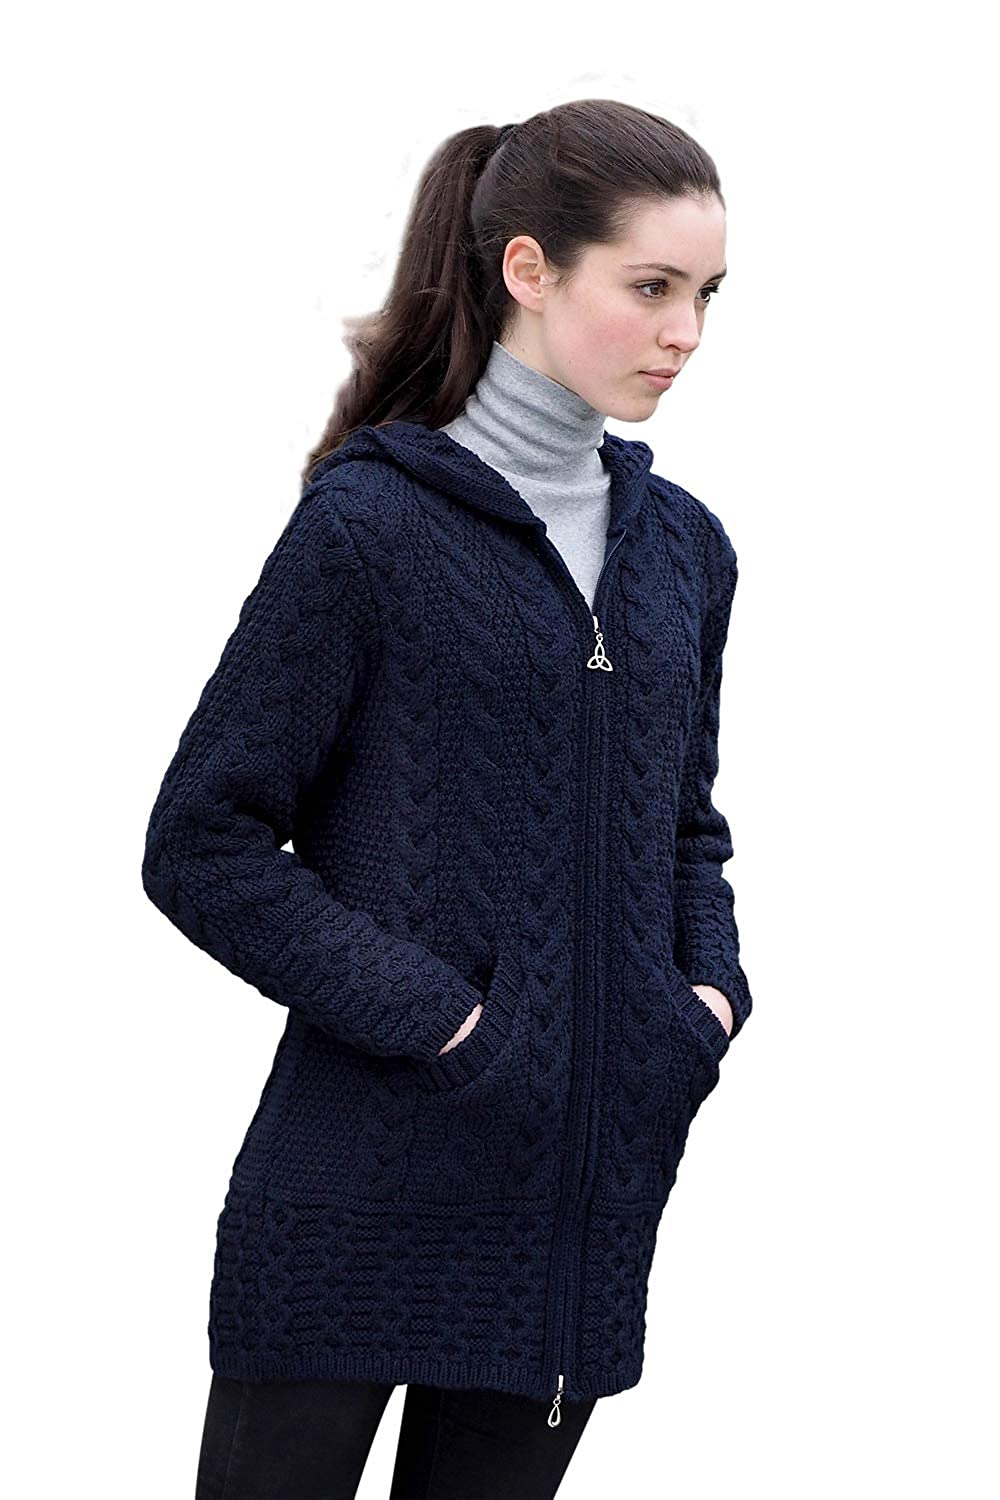 West End Knitwear Women's Brigid Hooded Aran Cardigan